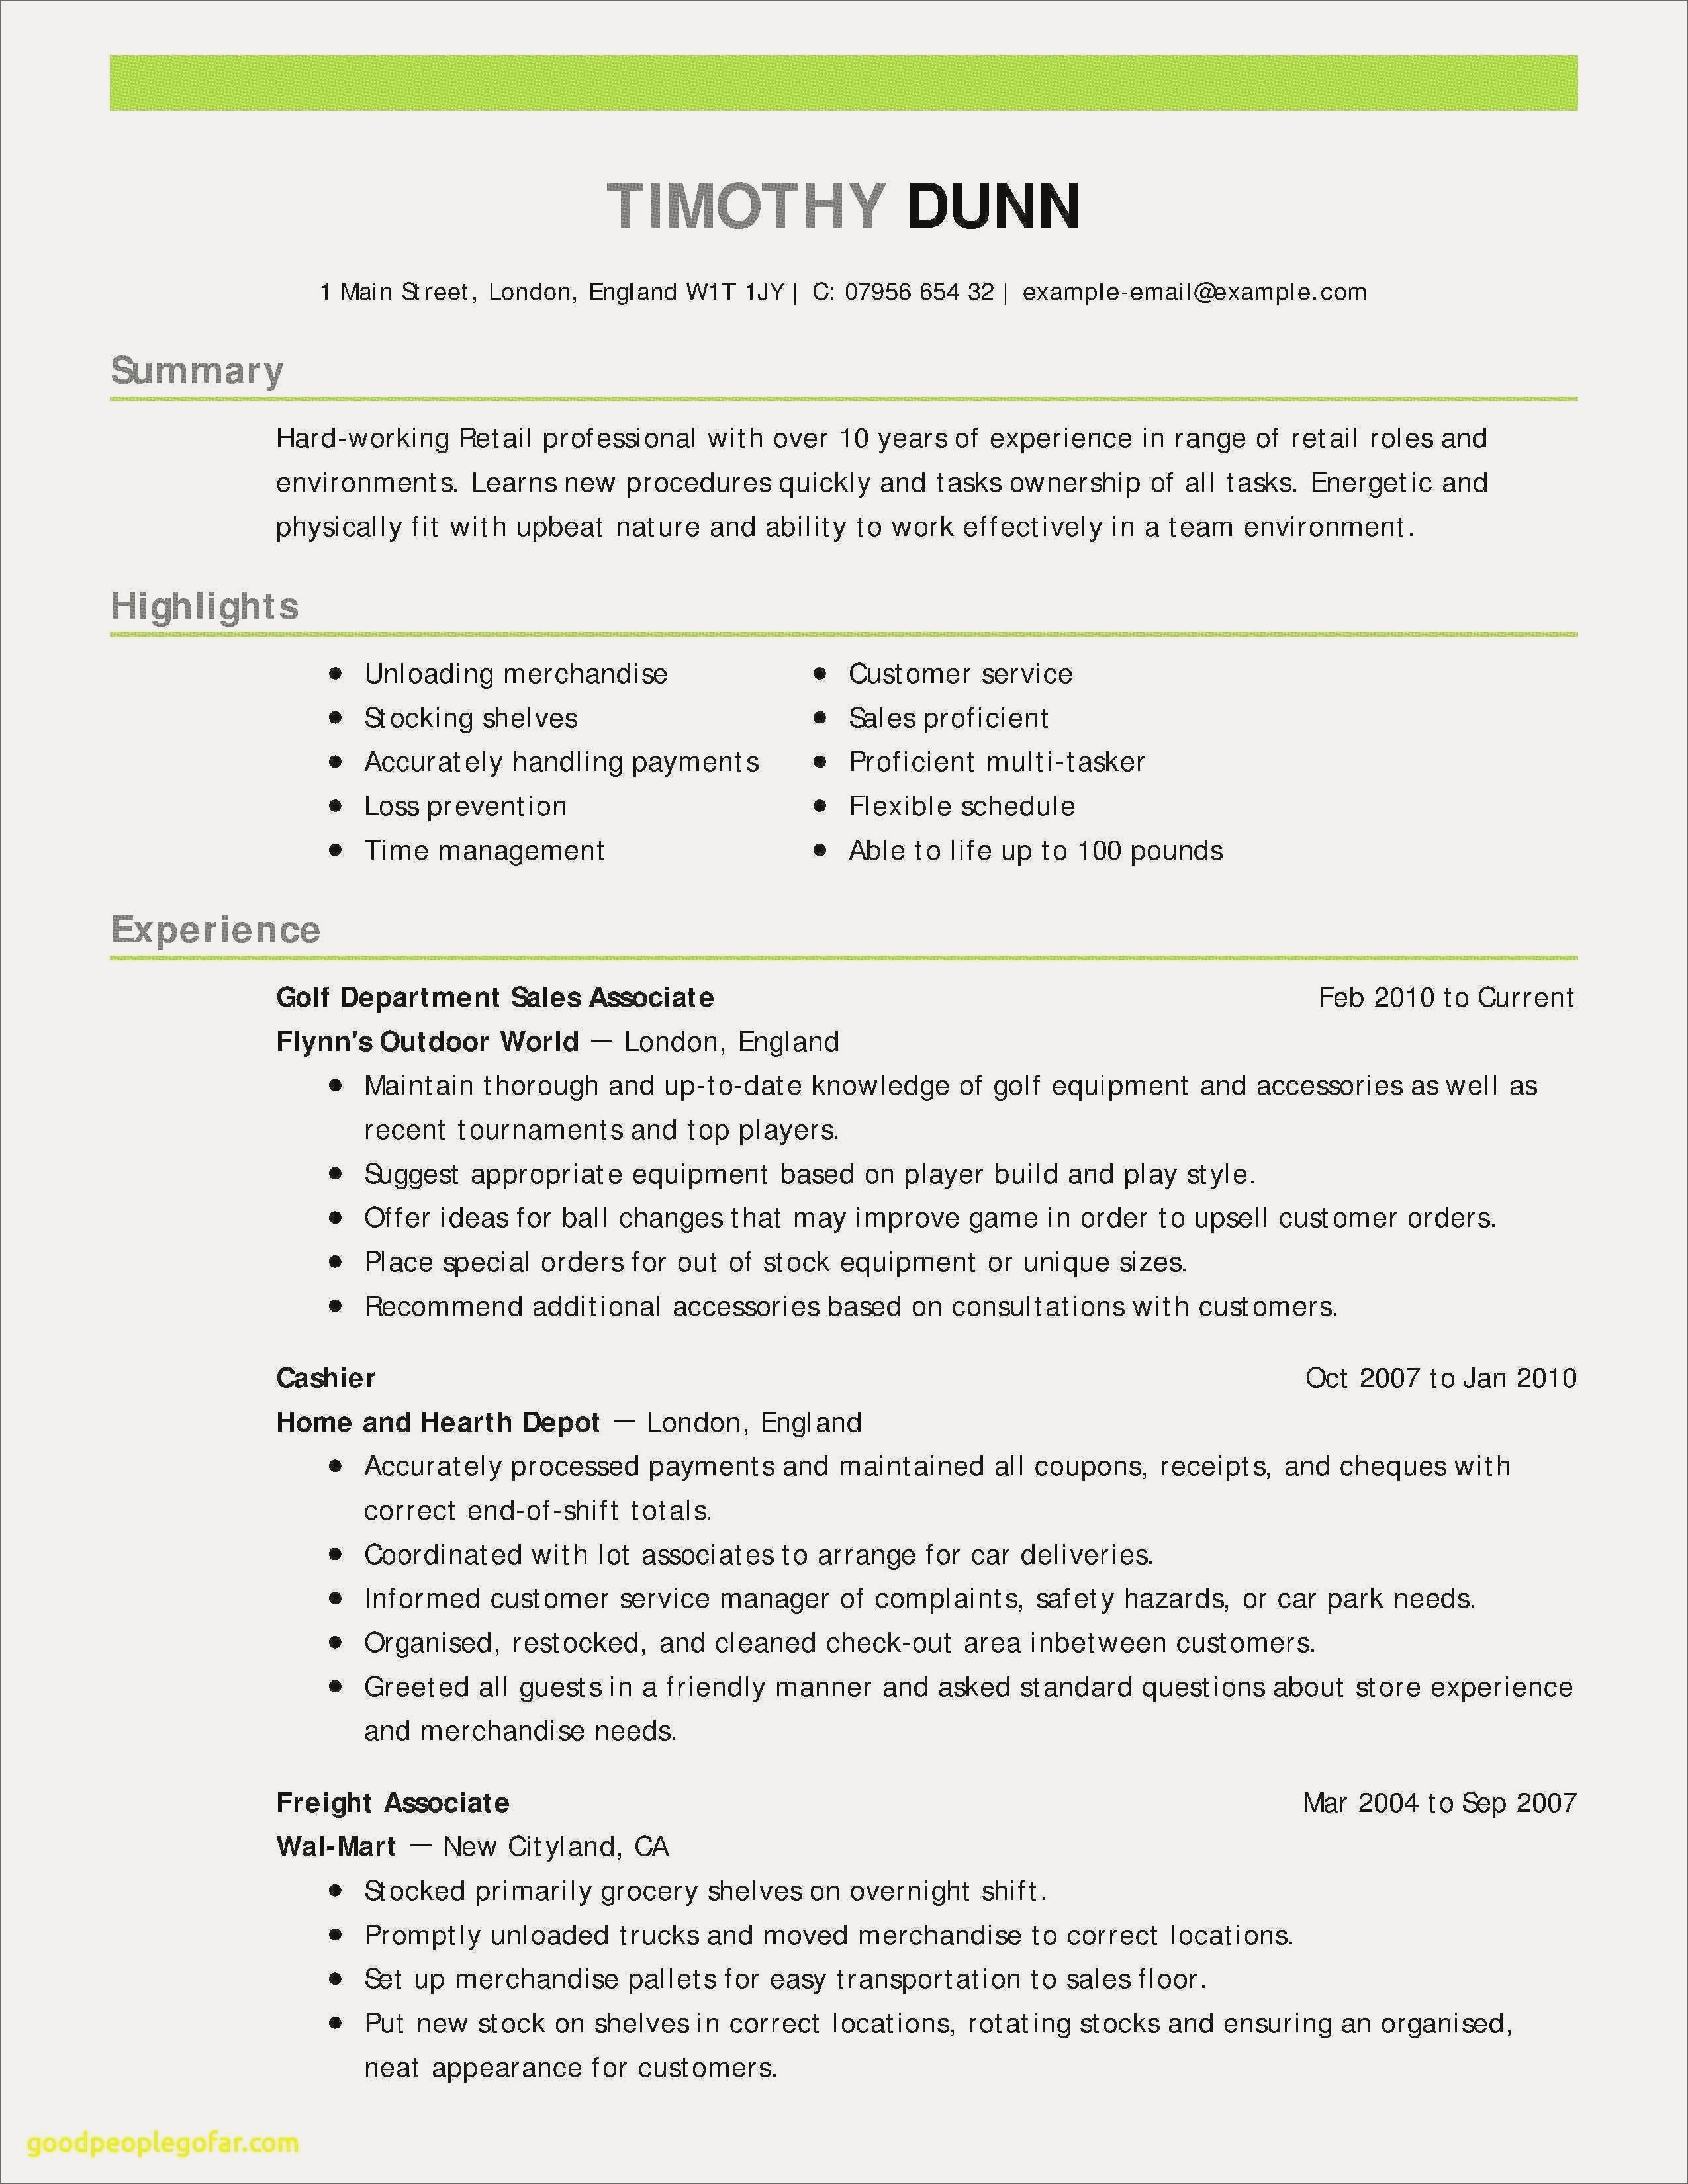 Great Skills to Put On Resume - Resume Examples Skills and Abilities Best Customer Service Resume